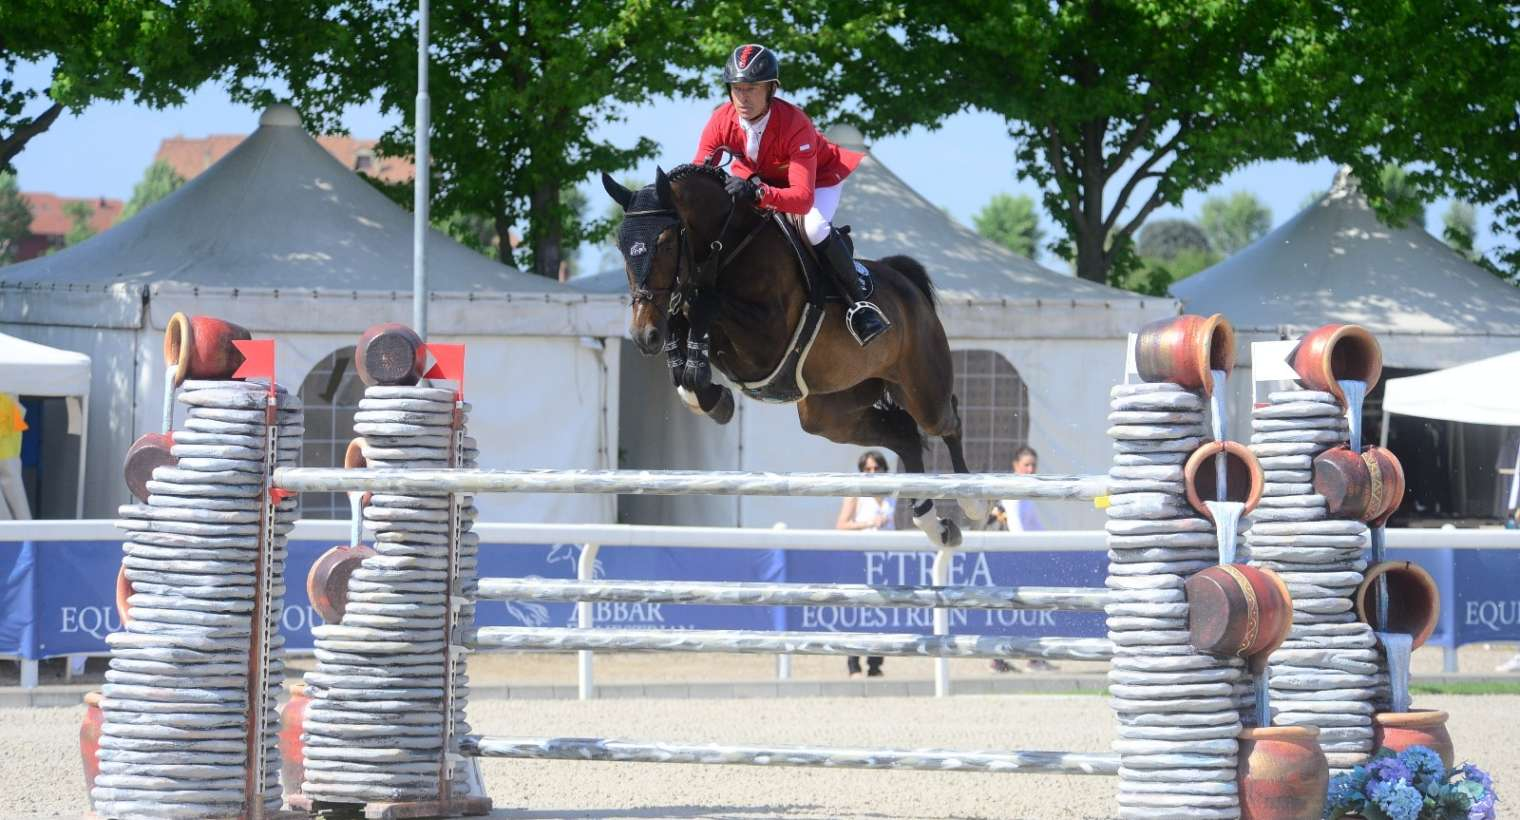 CSI 3* Busto Arsizio: good results with four horses